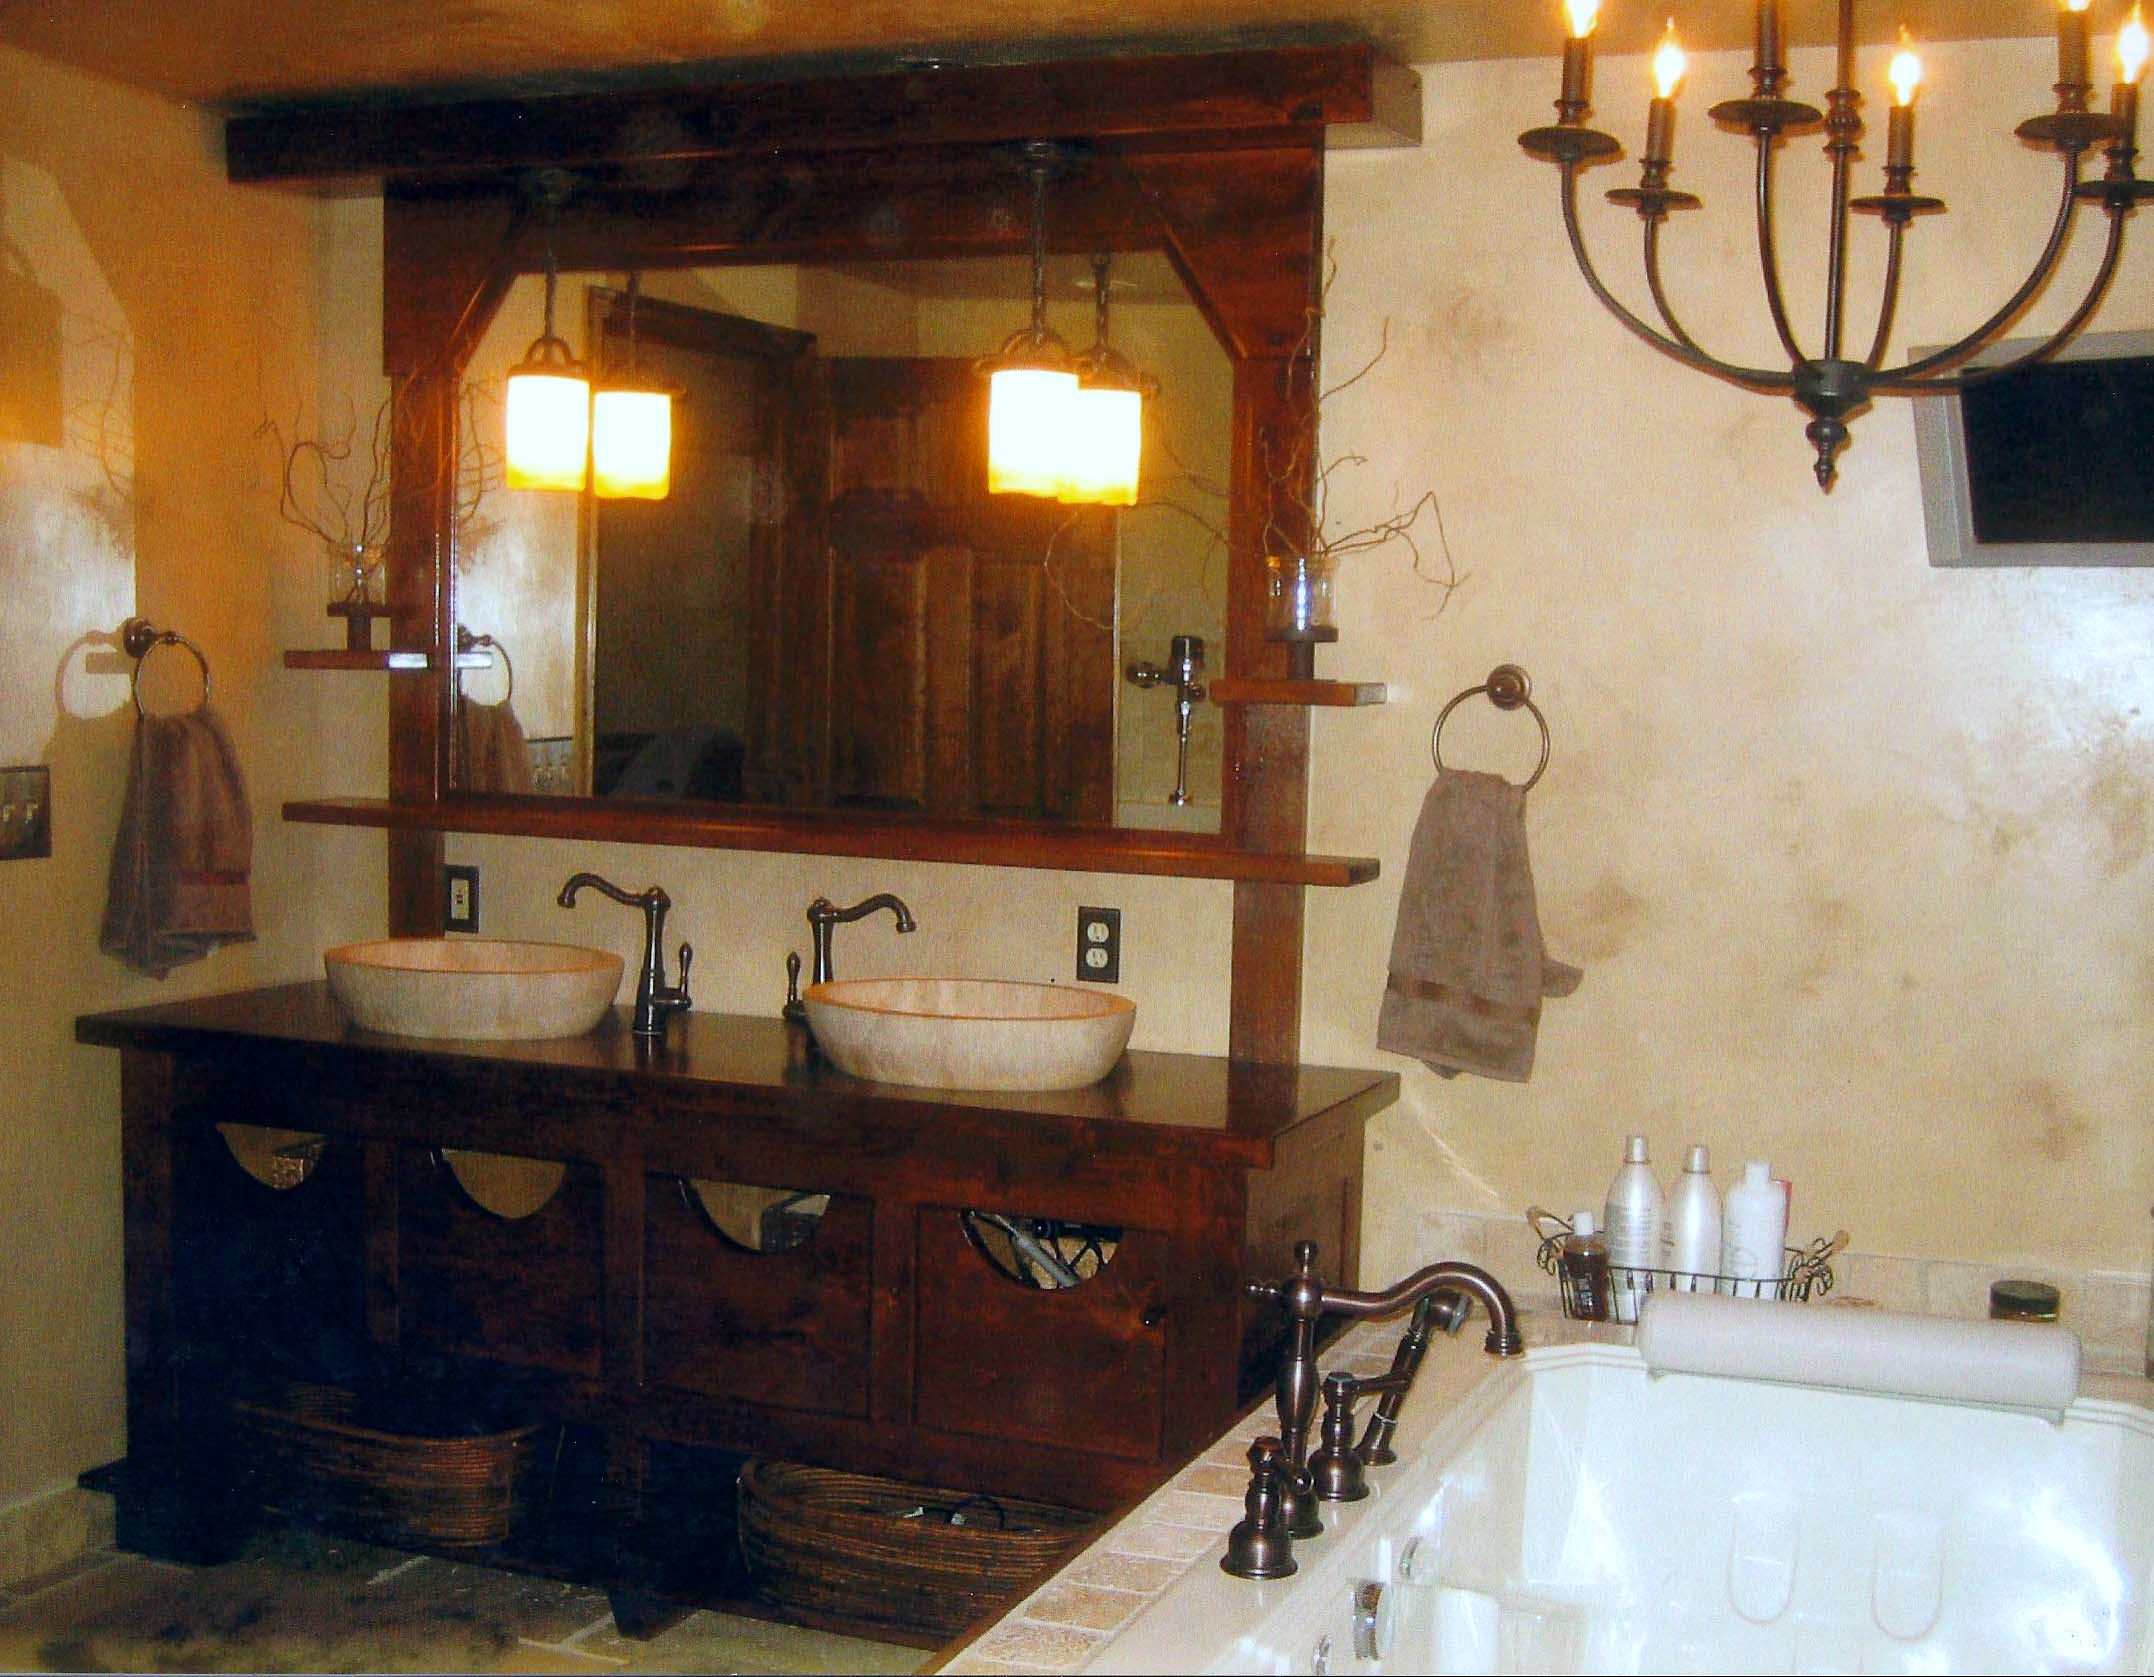 10 old world bathroom designs to think about ewdinteriors - Pleasant bathroom designs small bathroom radical change simple remodeling ...